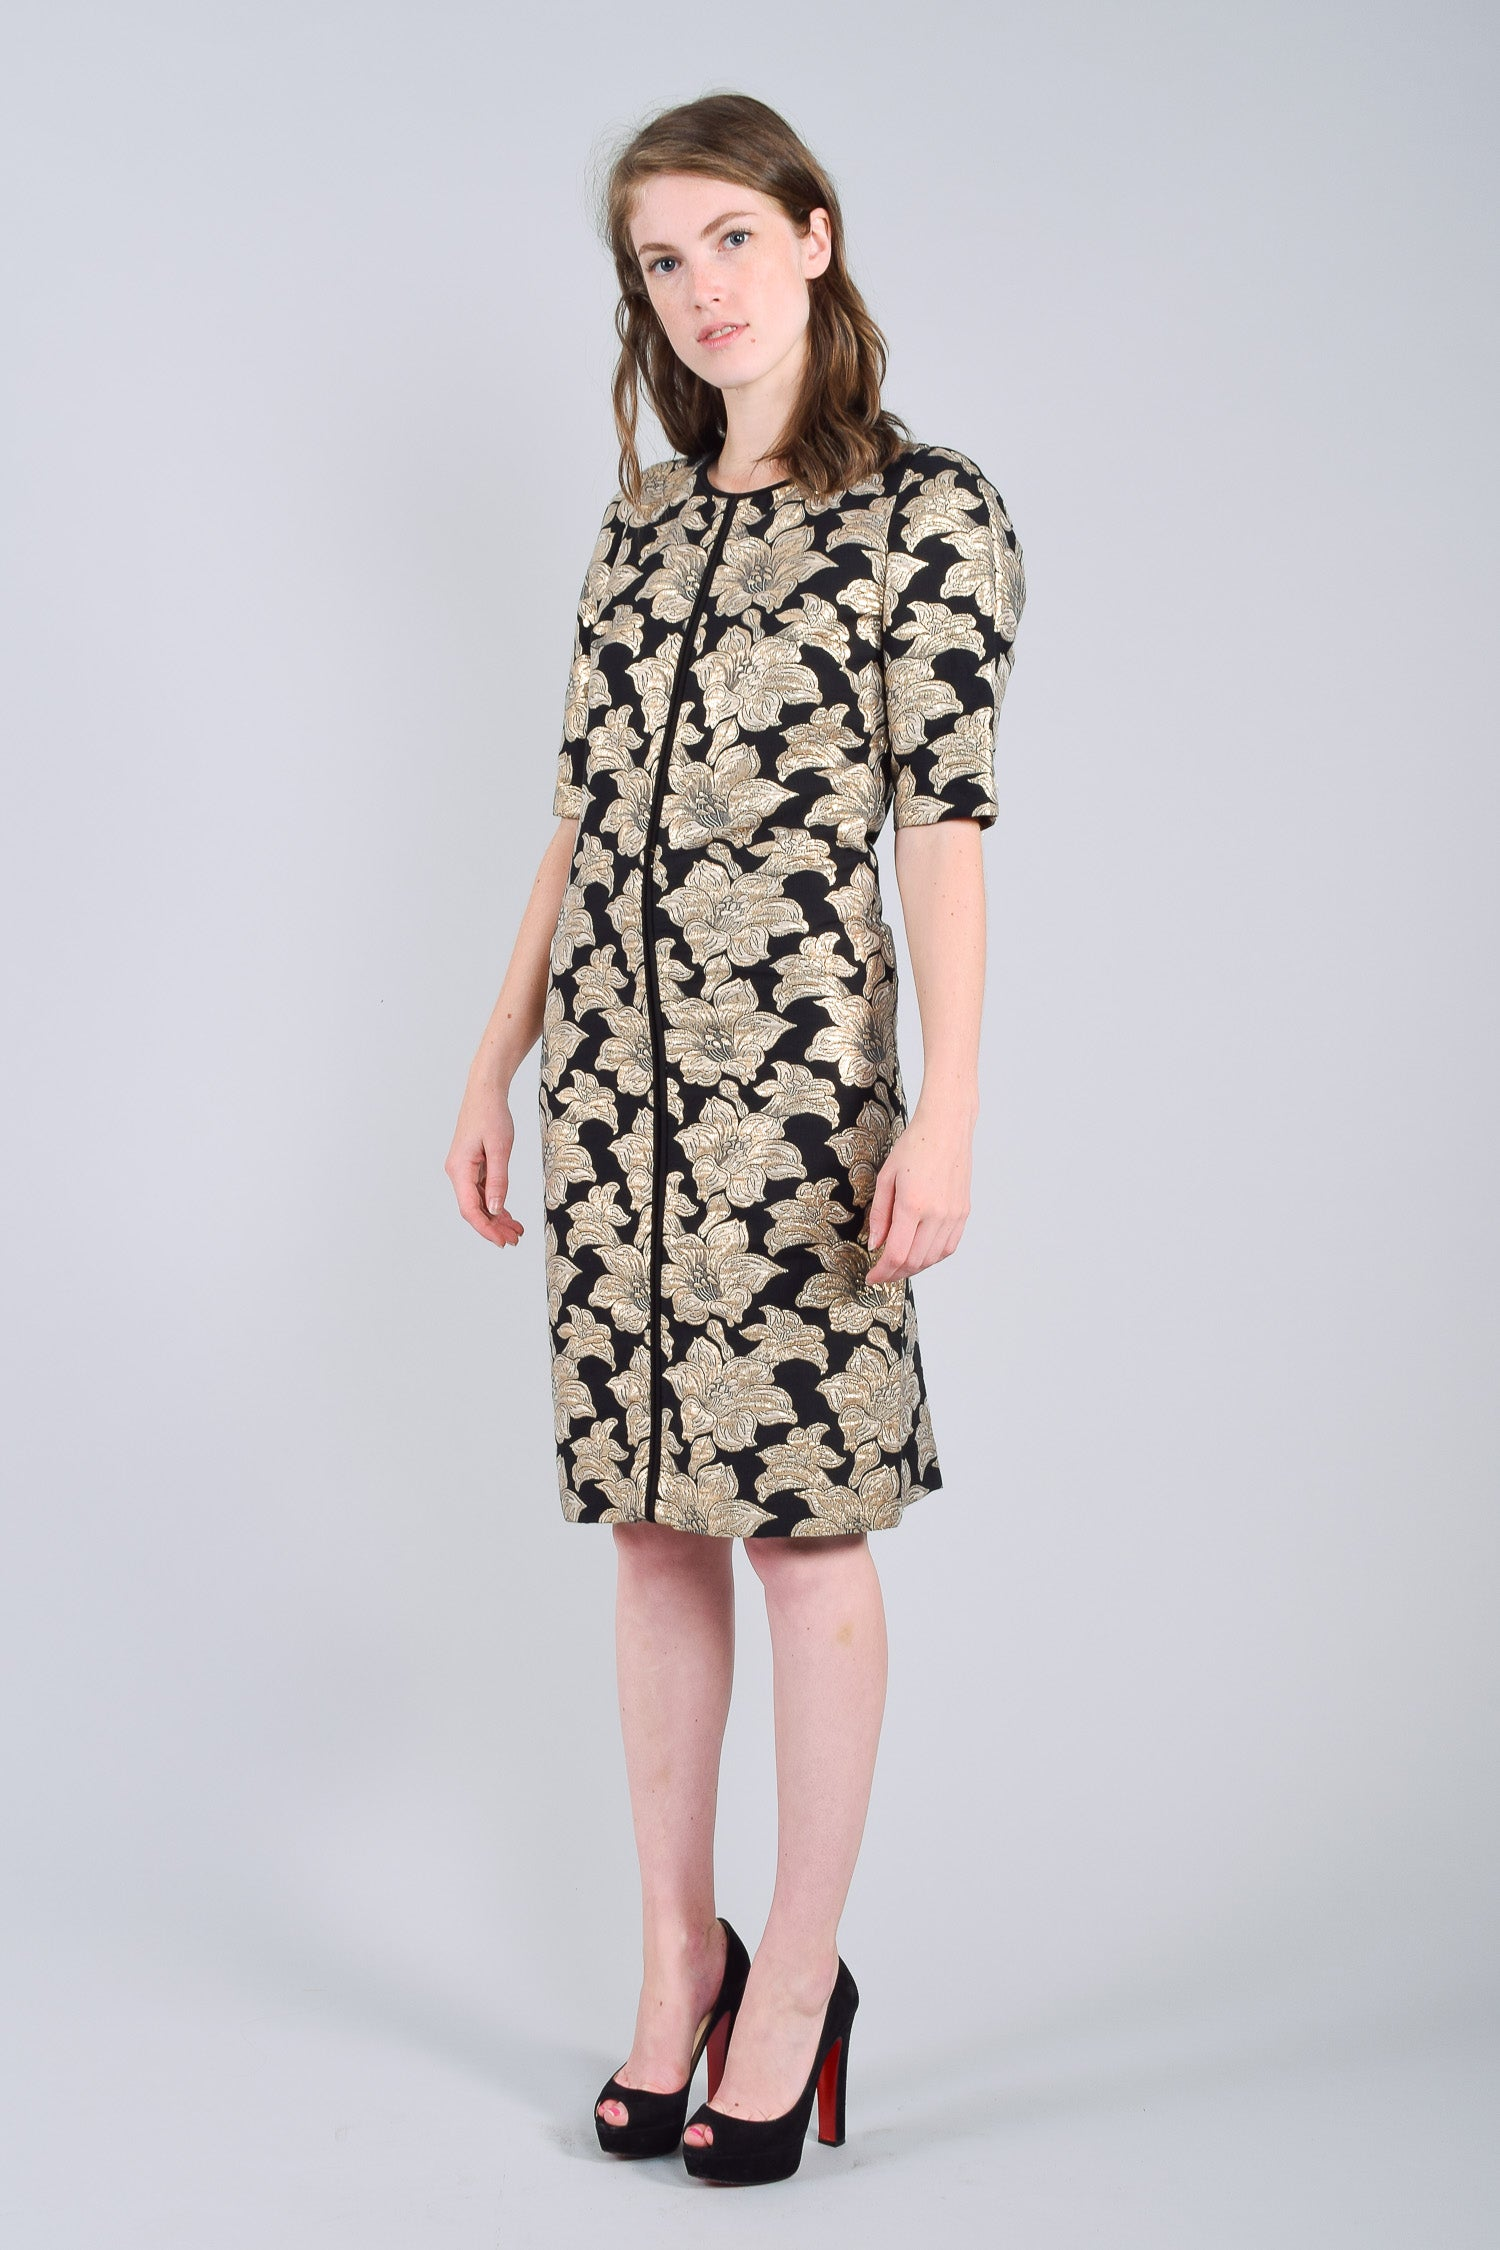 Marni Black and Gold Floral Brocade Short Sleeved Dress Size 40